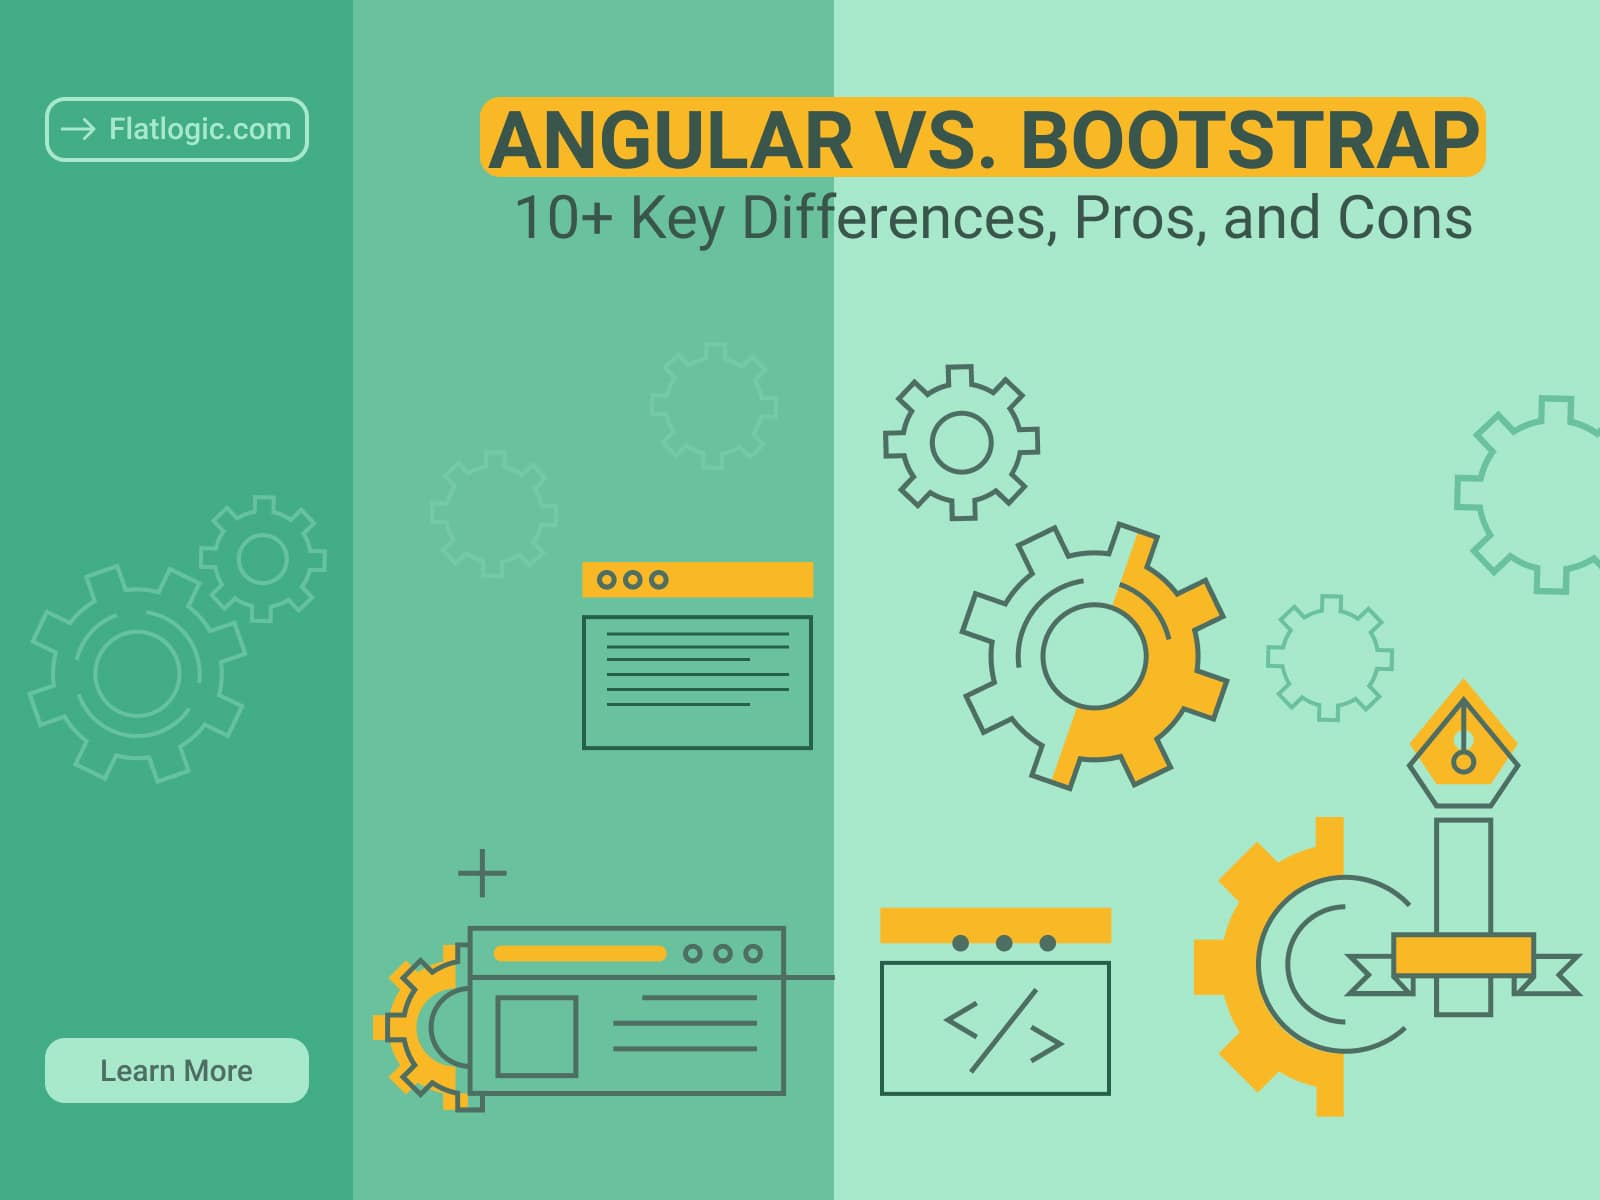 Angular vs. Bootstrap – 6+ Key Differences, Pros, and Cons